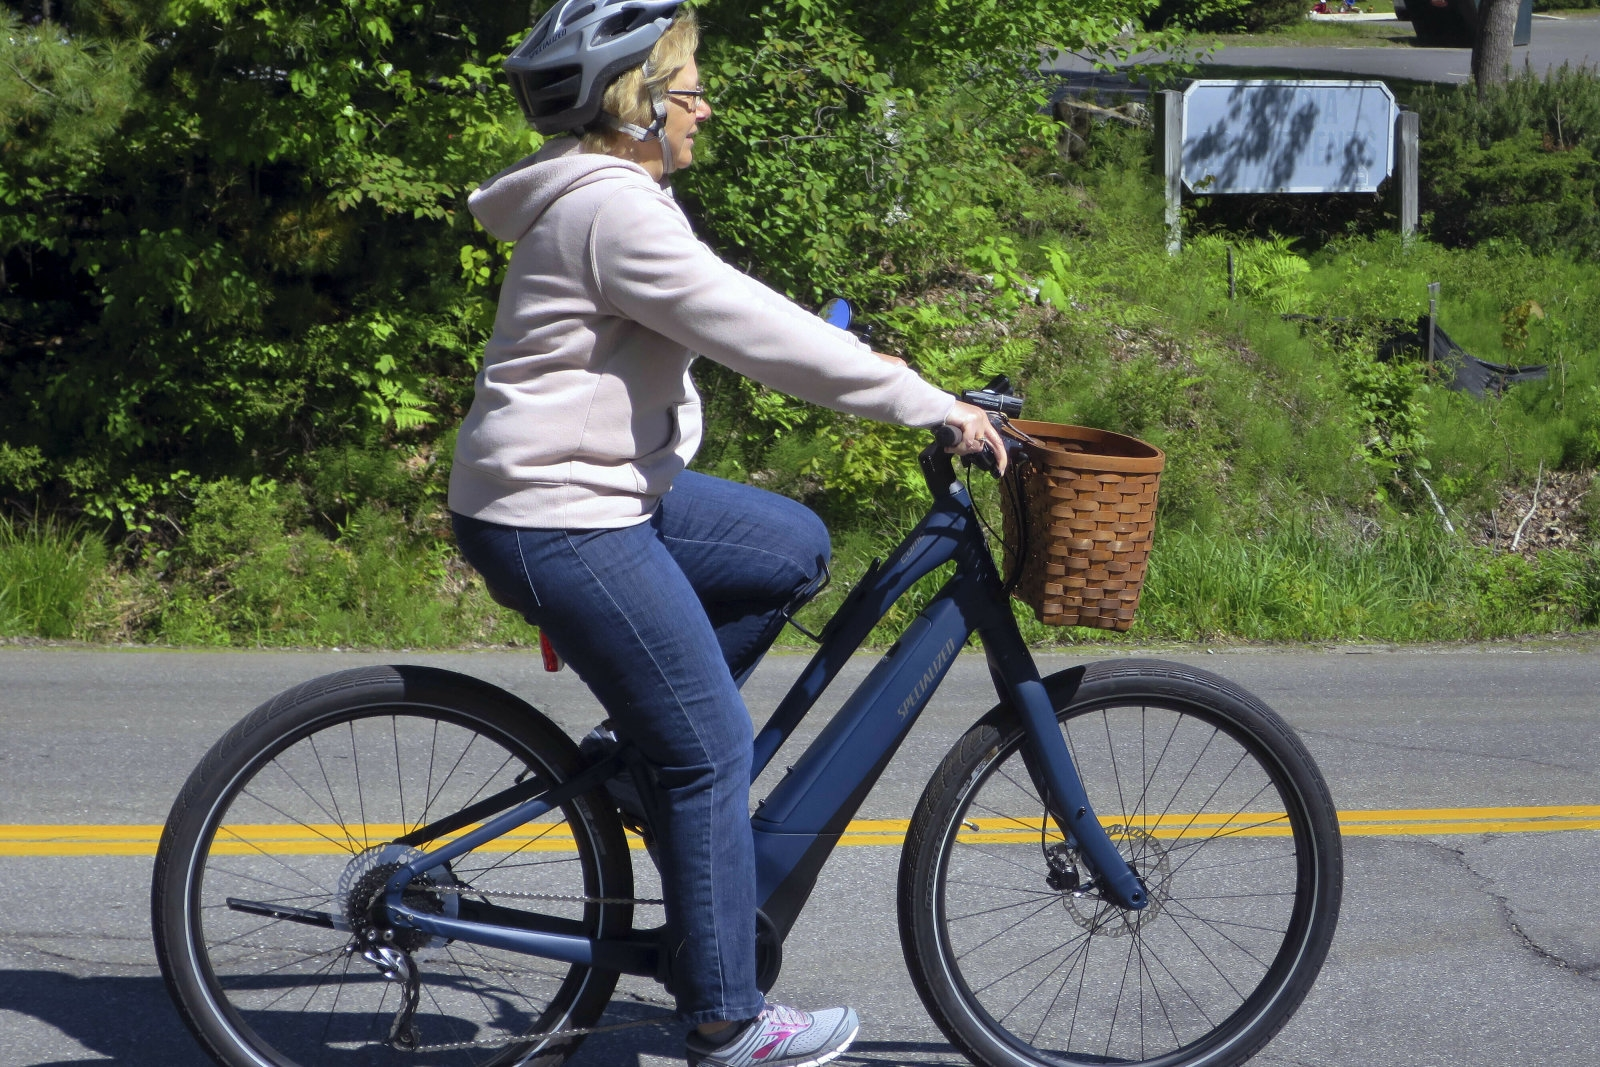 E-bikes are now allowed in US national parks, for better or worse | DeviceDaily.com